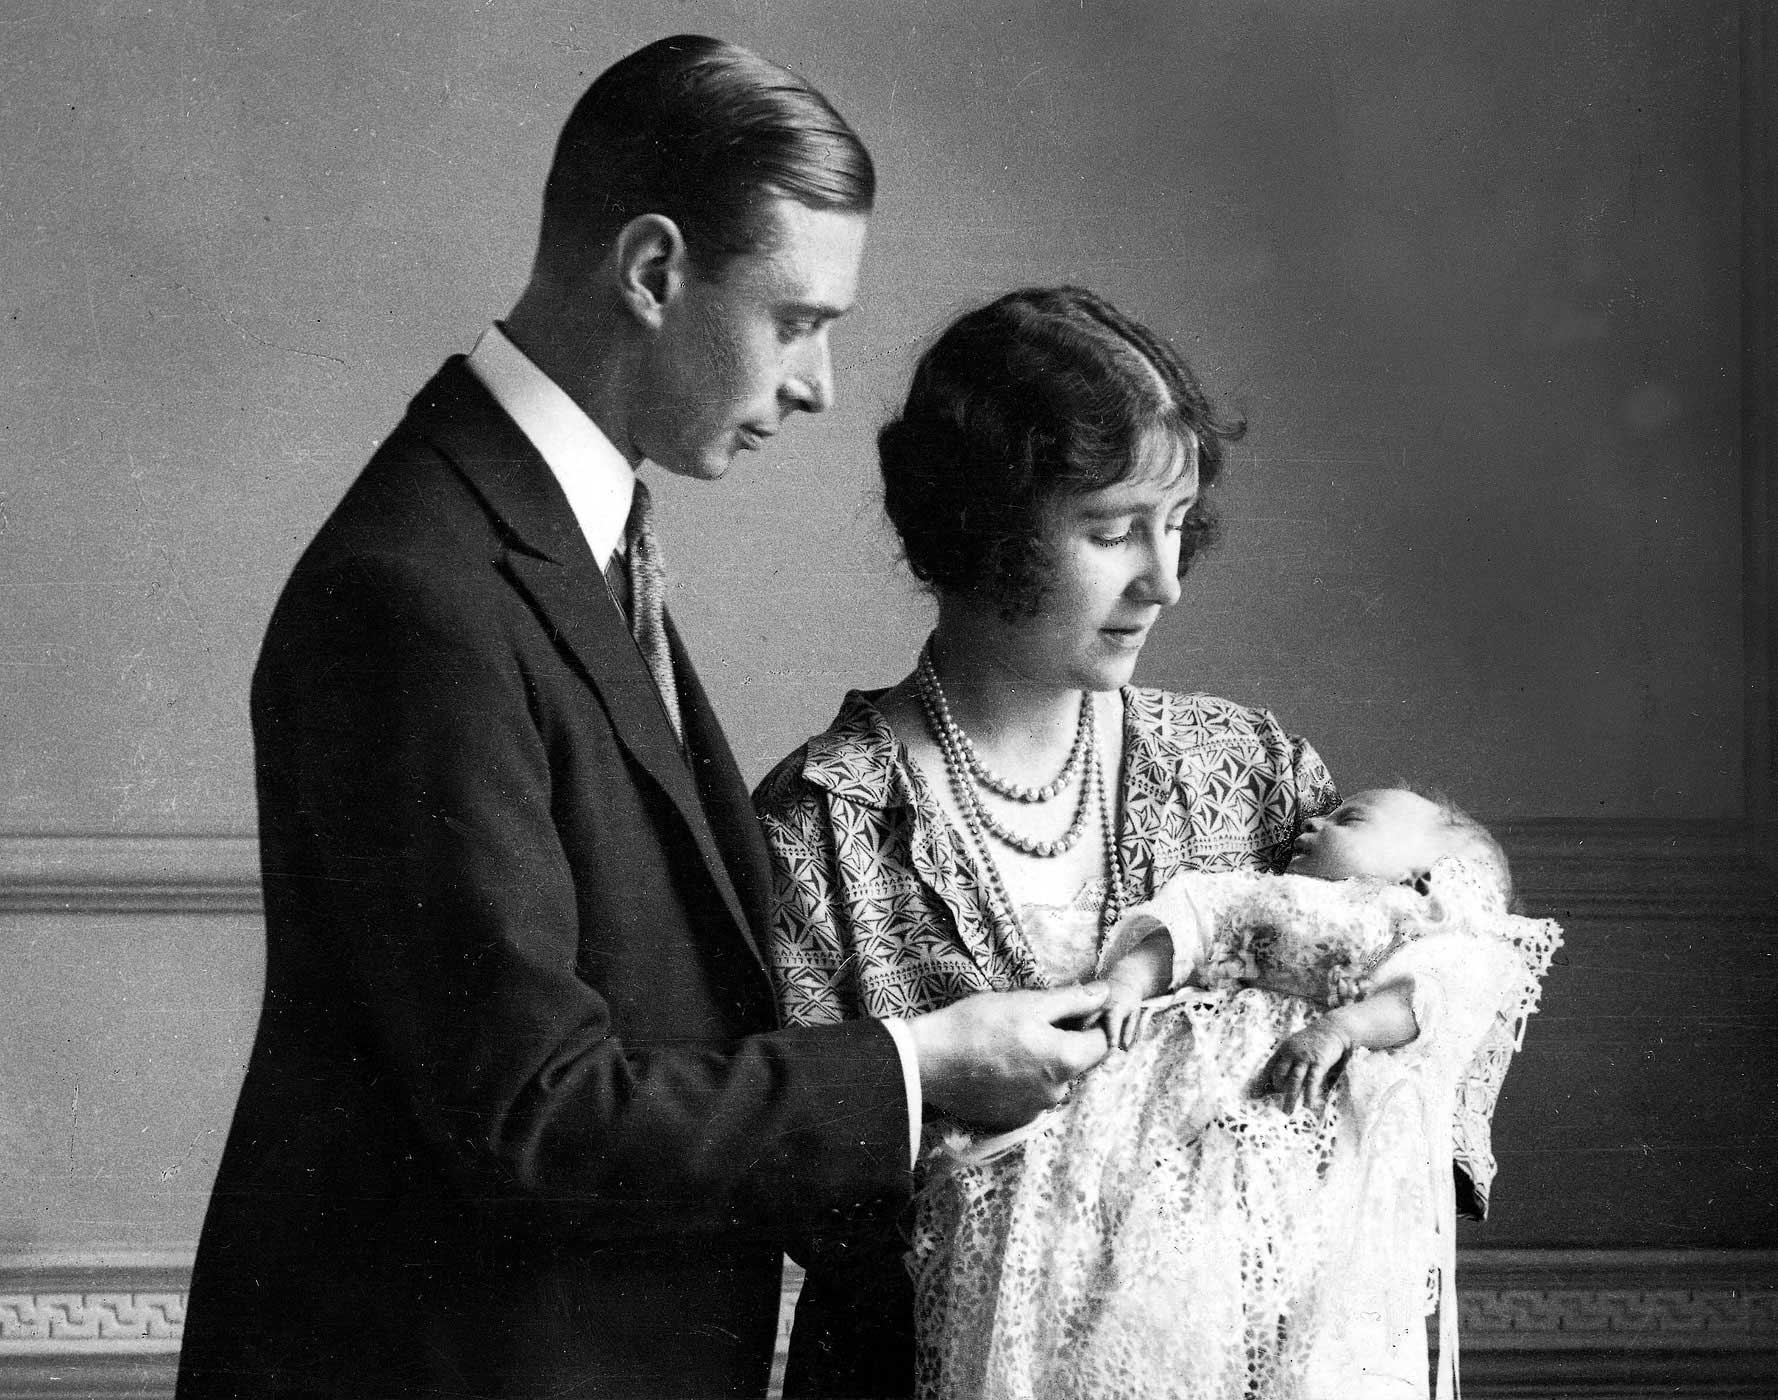 On April 21, 1926, the Duke and Duchess of York (later King George VI and Queen Elizabeth, the Queen Mother) welcomed their daughter Elizabeth Alexandra Mary to the world. Shortly after, the family was photographed with baby Elizabeth cloaked in a christening robe that had been in the royal family for generations.